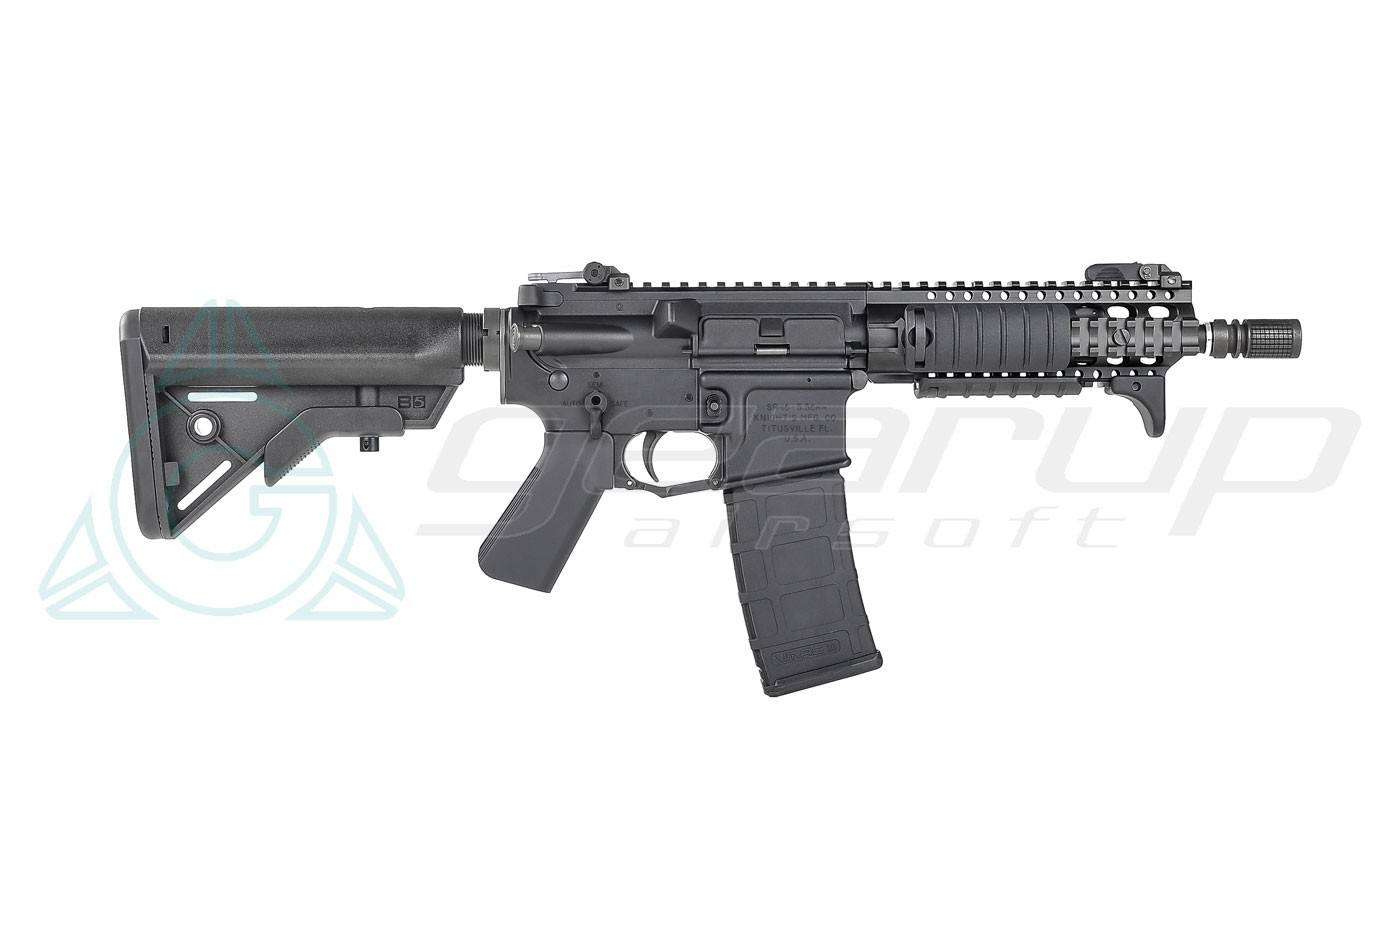 GBBR (Gas Blowback Rifle)